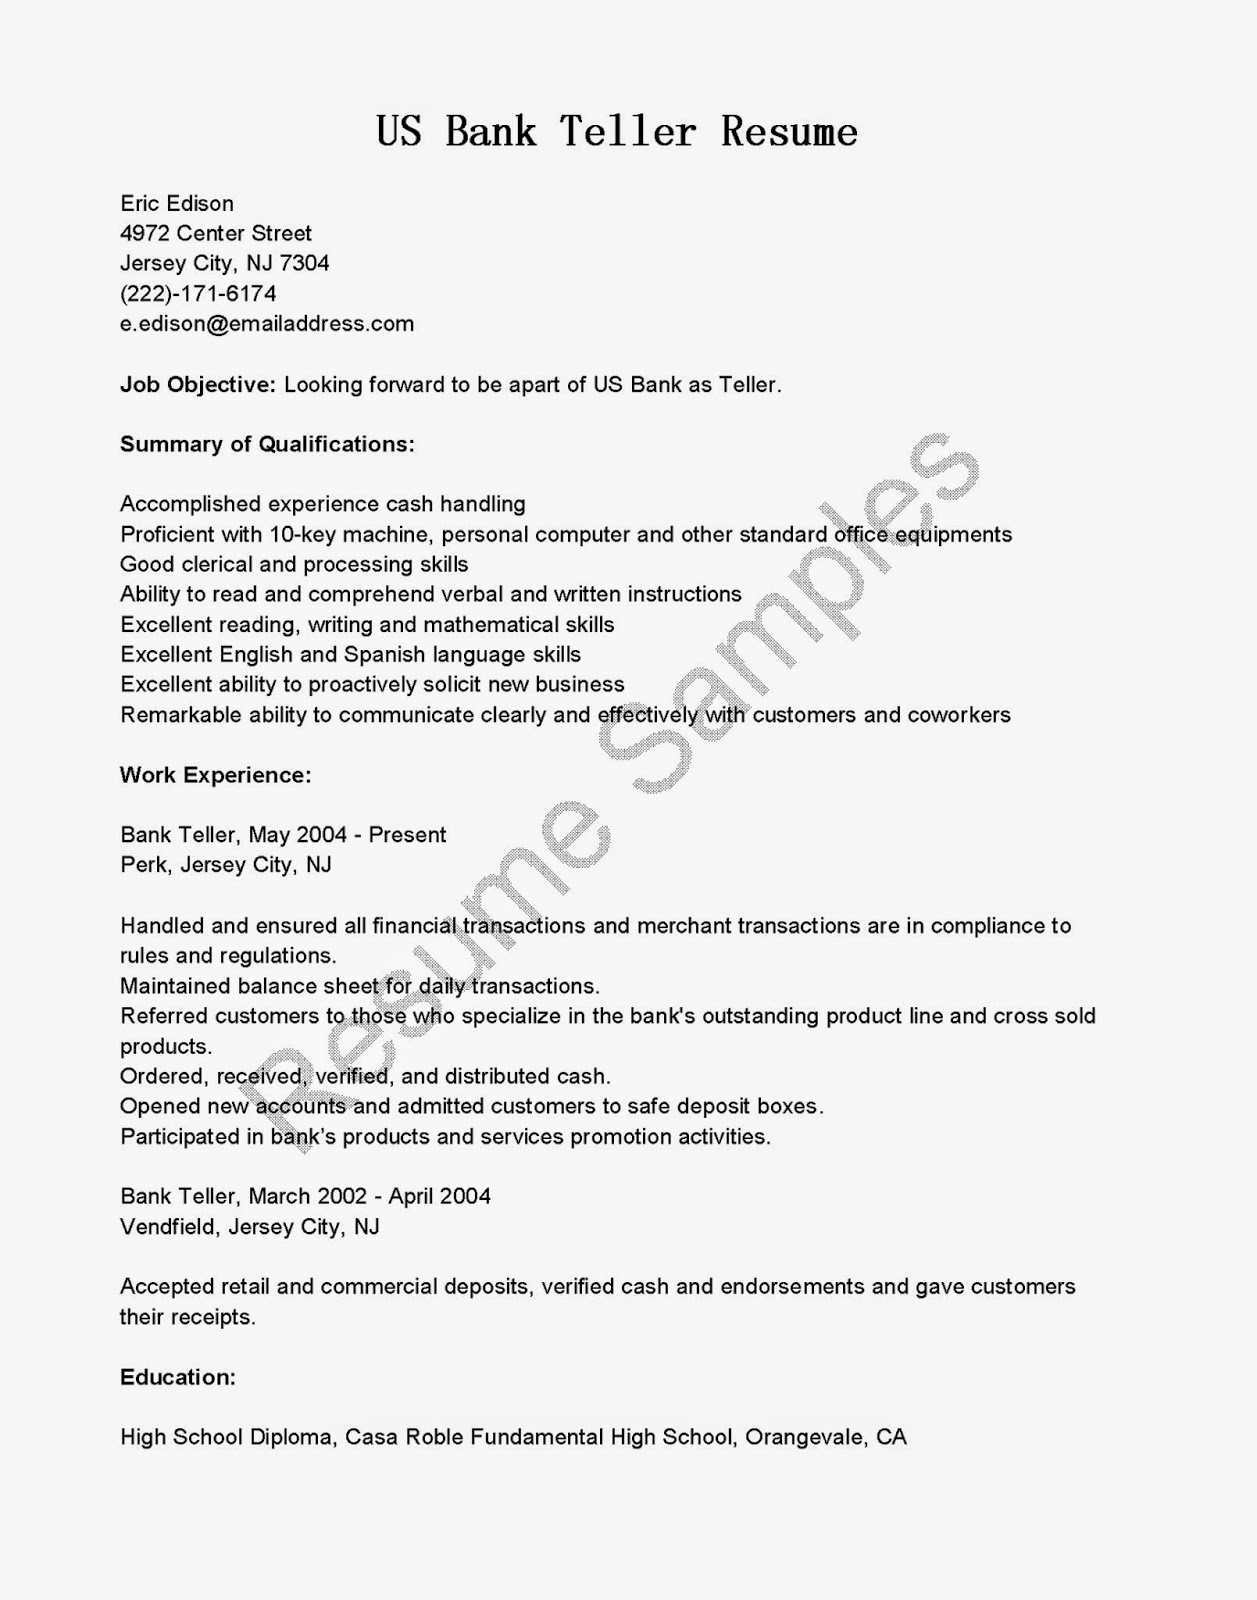 Resume Examples Sales Position Cdl Driver Resume Socialsci Cotruck Driver  Resume Job Description Truck Driver Resume  Best Sales Resumes